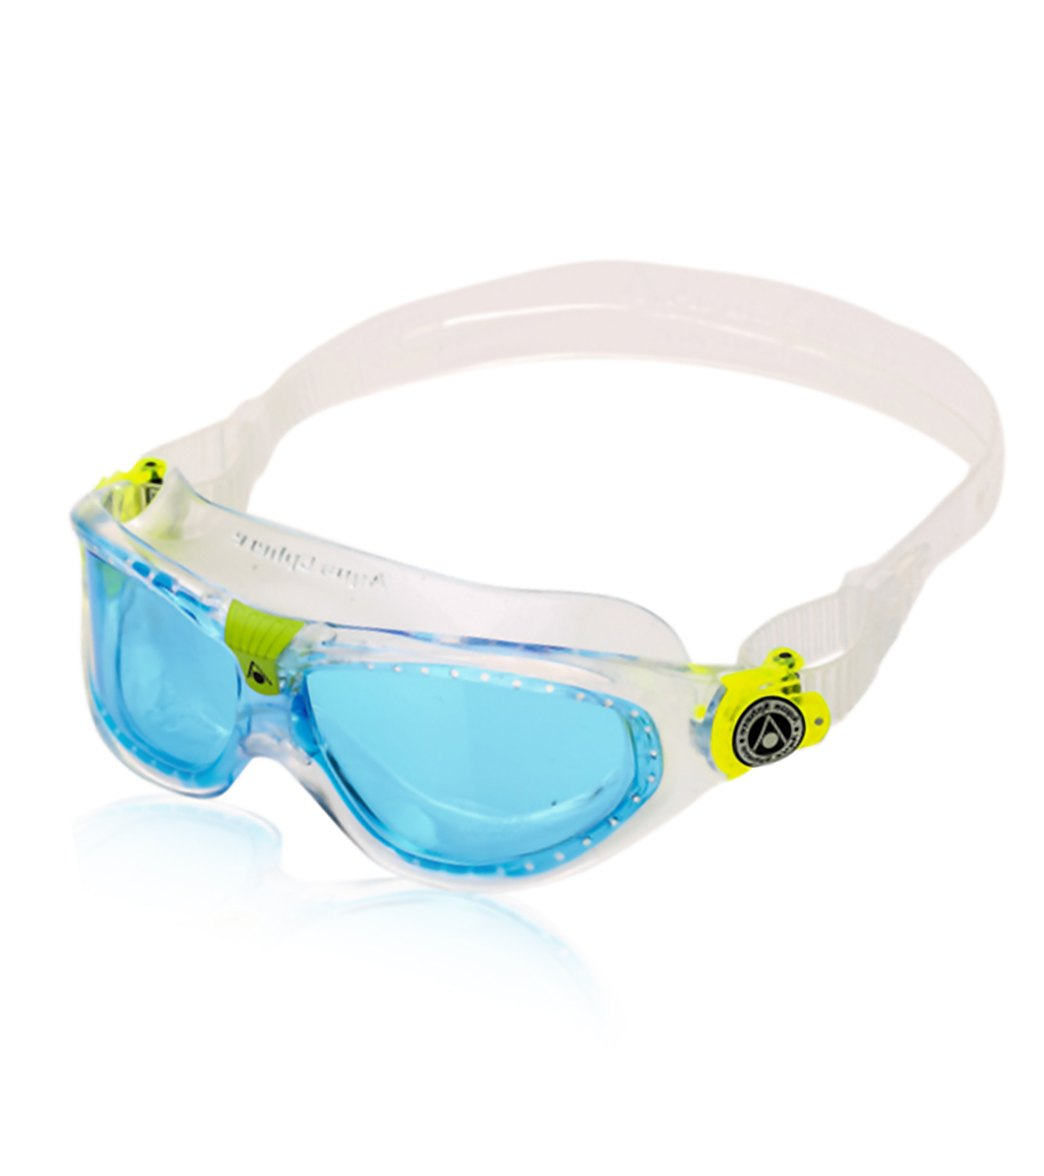 561ecbc1294e Aqua Sphere Seal Kid s Blue Lens Goggle at SwimOutlet.com